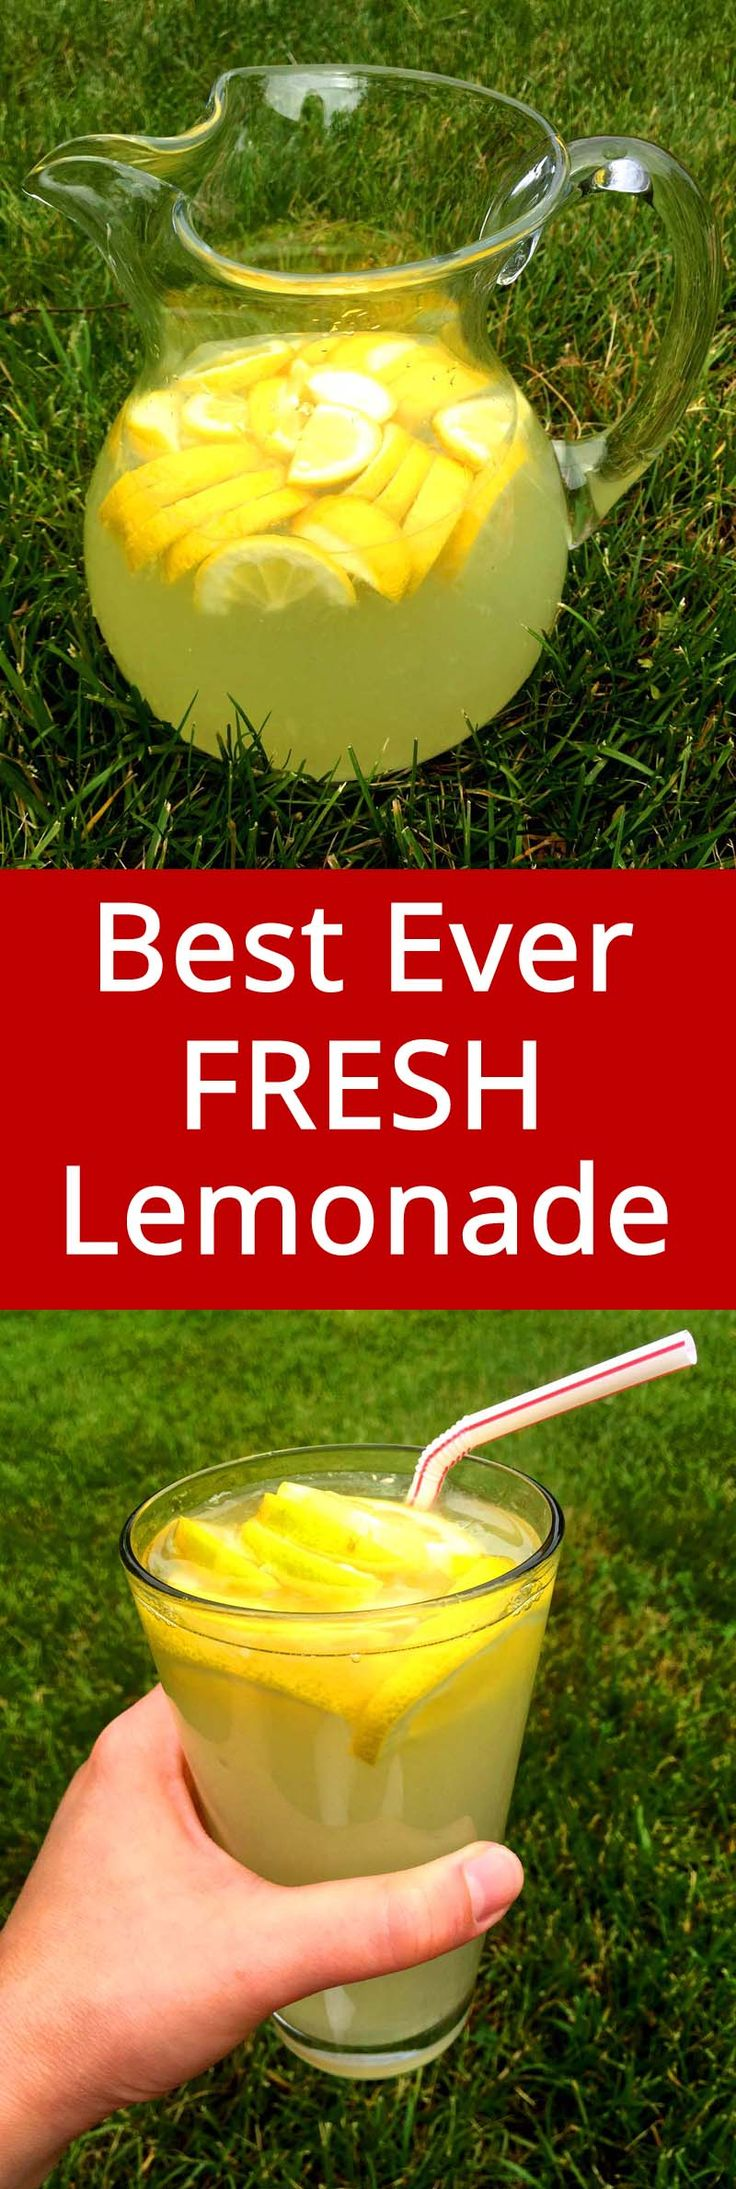 25 best ideas about fruity alcoholic drinks on pinterest for Best mix drink ever